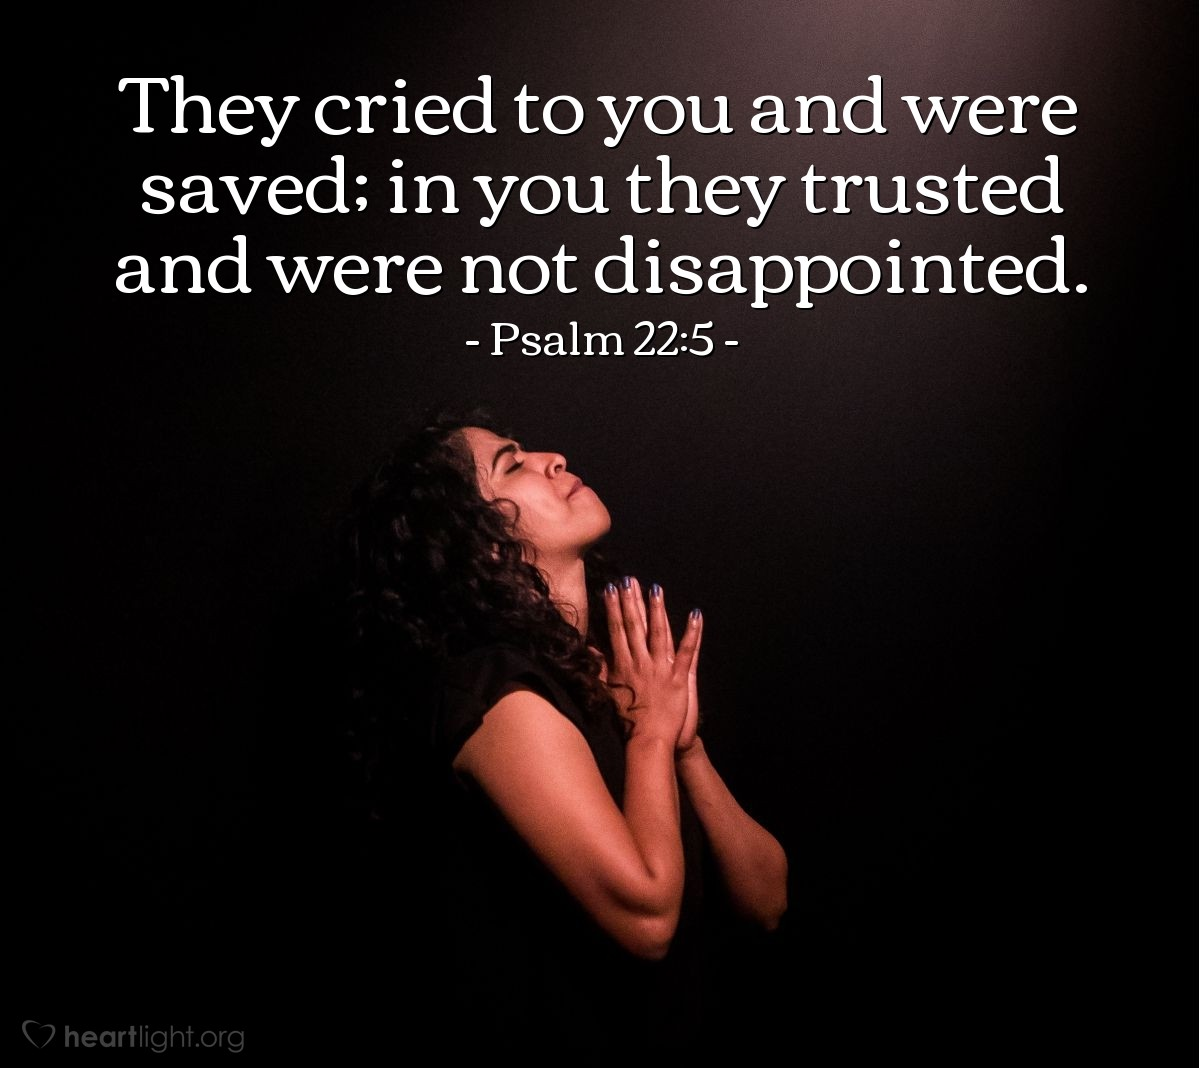 Illustration of Psalm 22:5 — They cried to you and were saved; in you they trusted and were not disappointed.